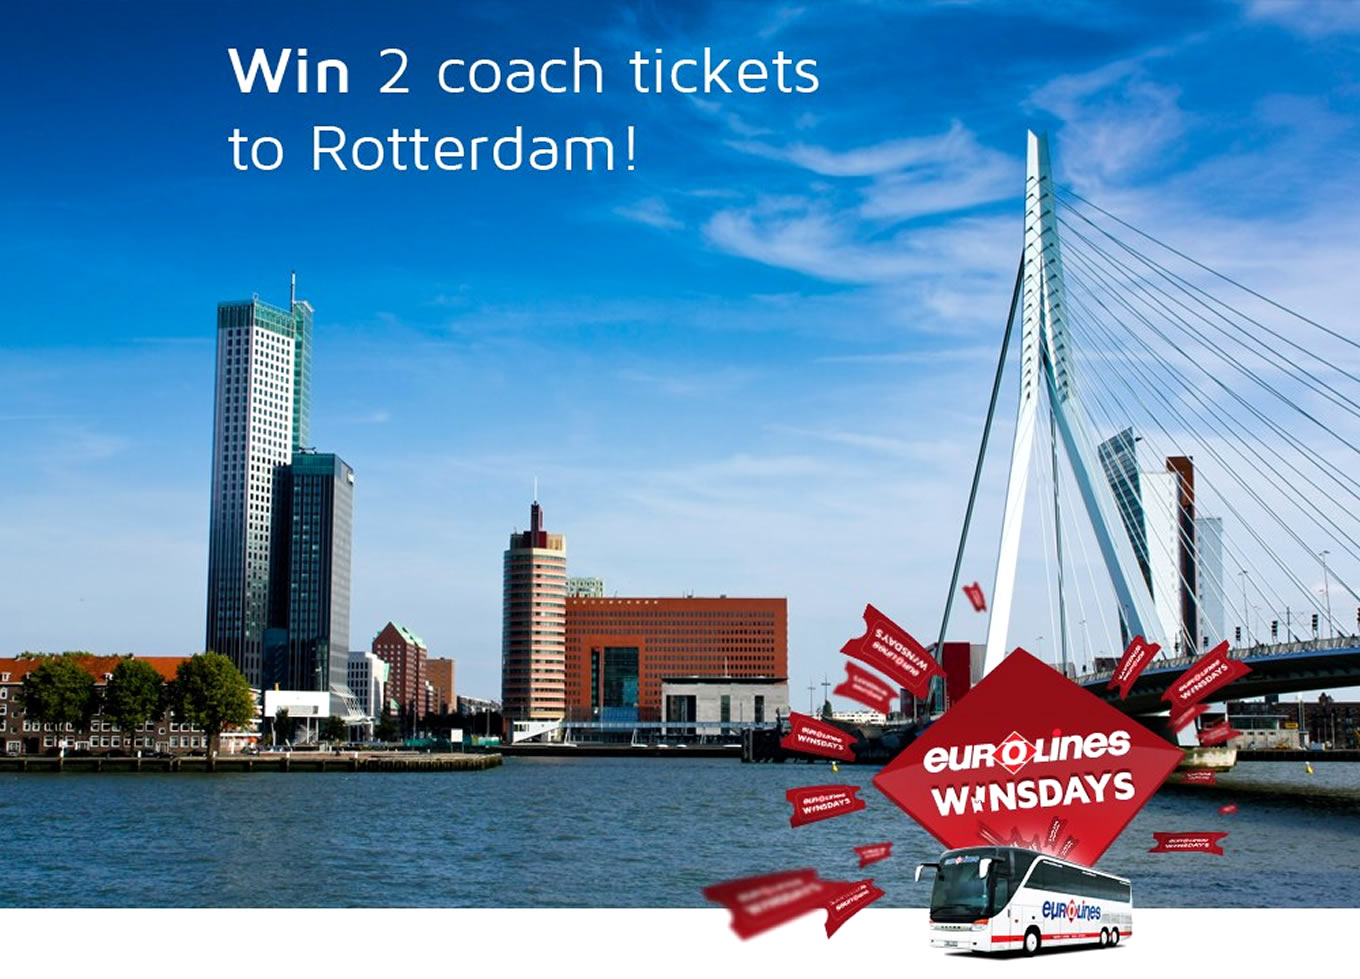 Destination Rotterdam Poster of Coach Trip Campaign by Eurolines UK